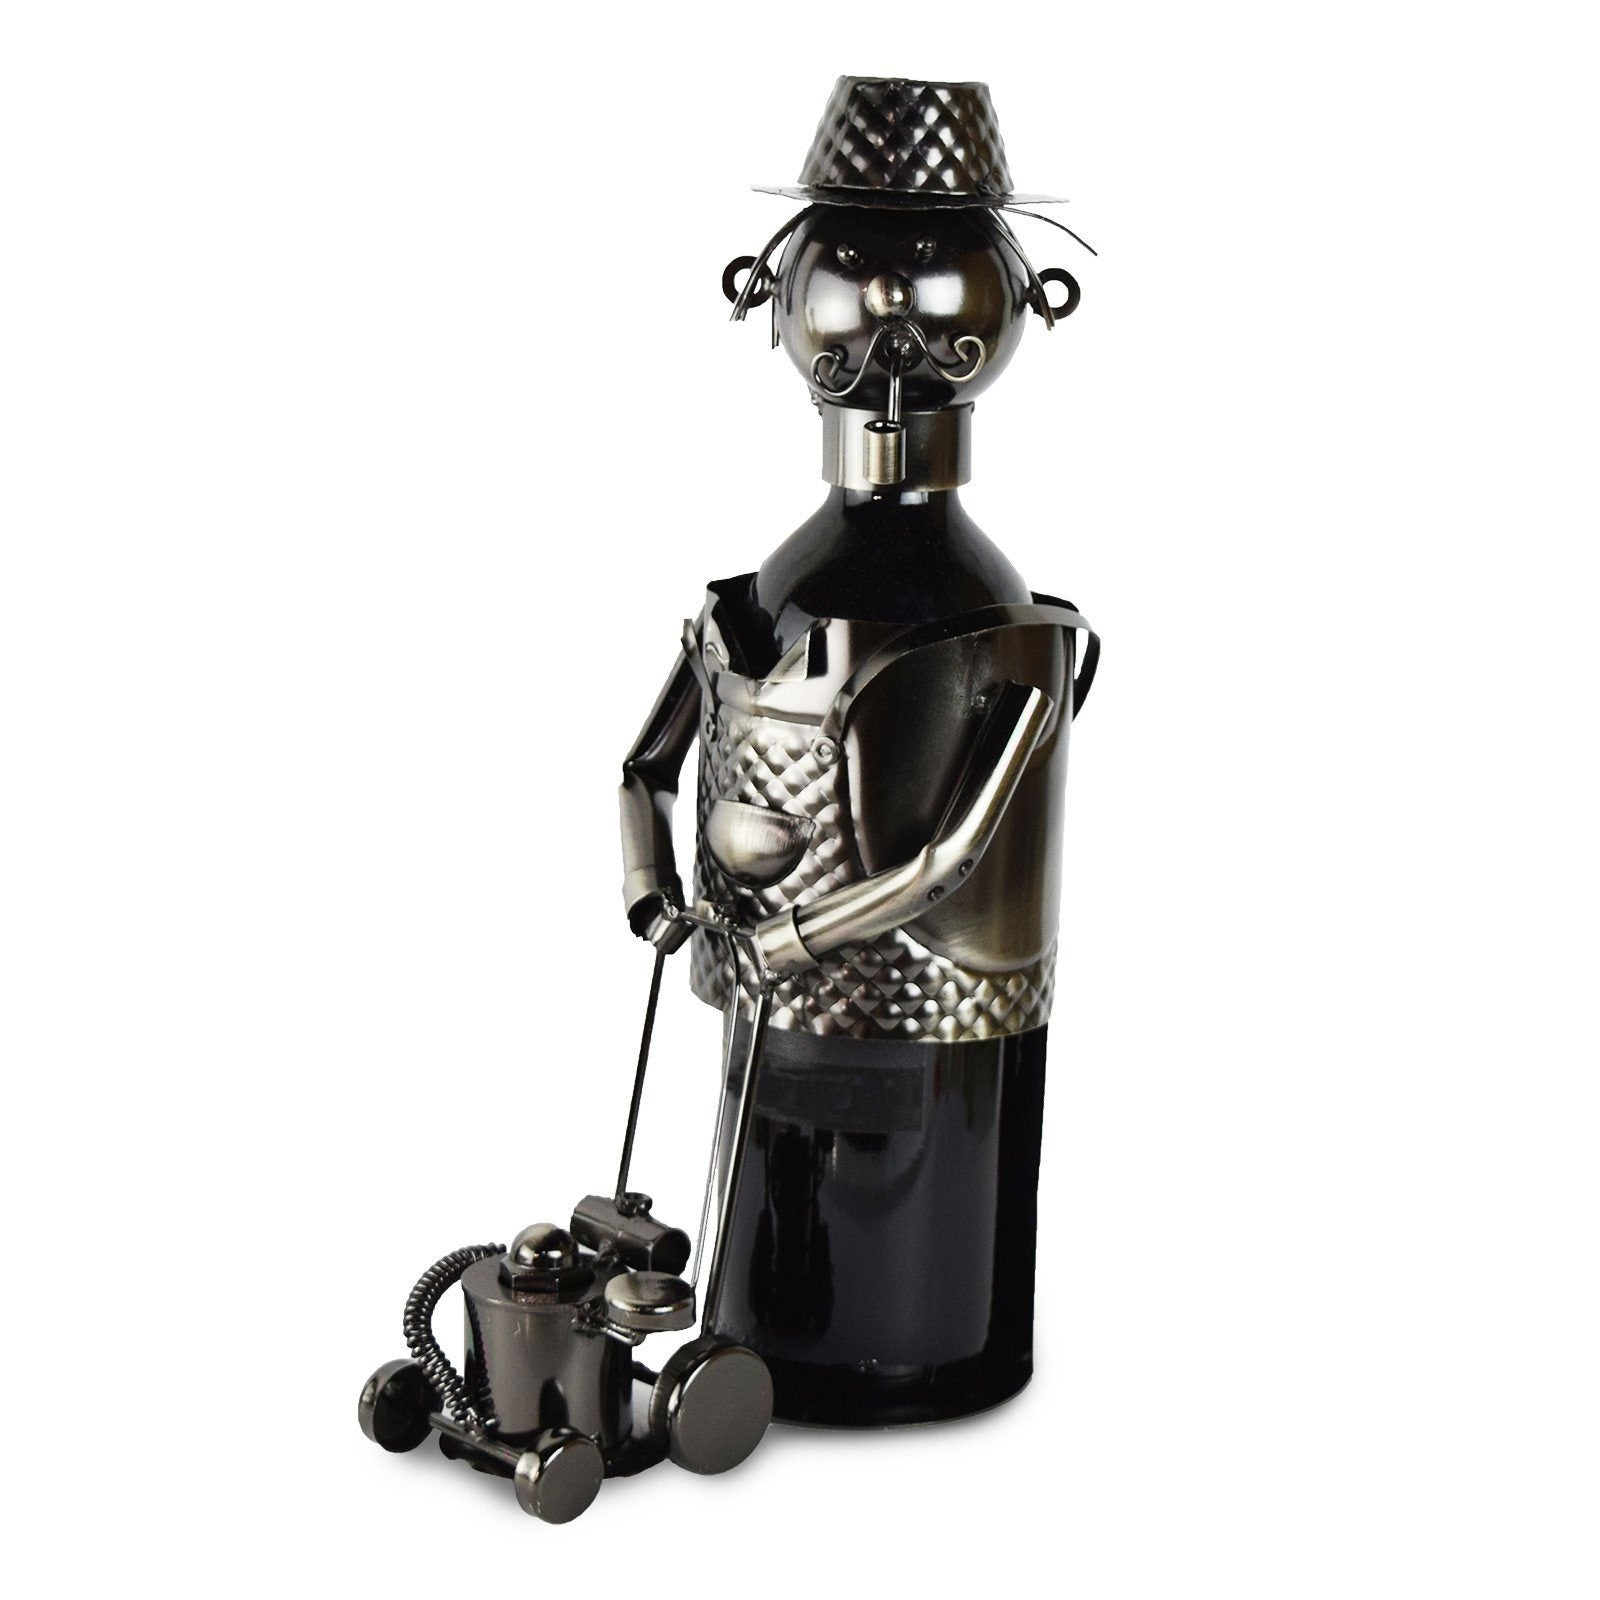 Groundskeeper Wine Holder - Includes Wine!